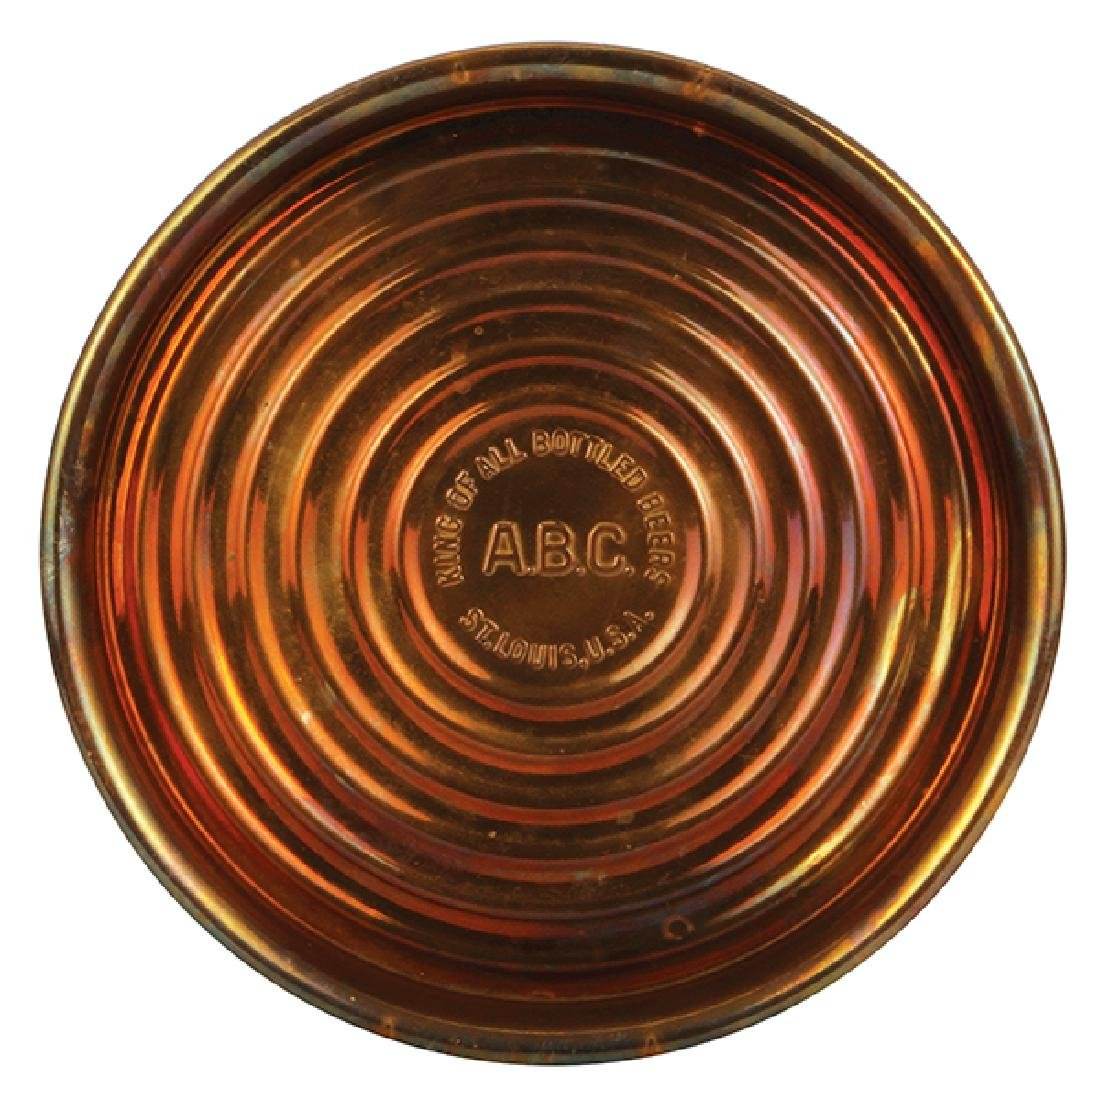 A.B.C. King of all Bottled Beers tray